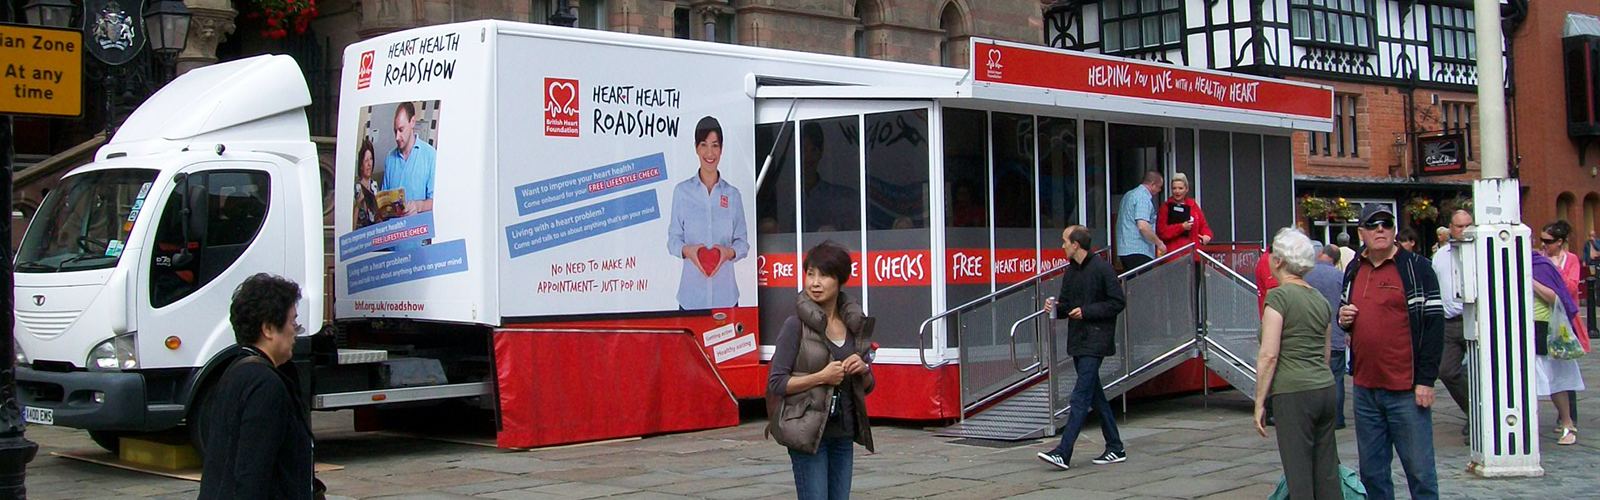 Healthcare Awareness Mobile Unit BHF